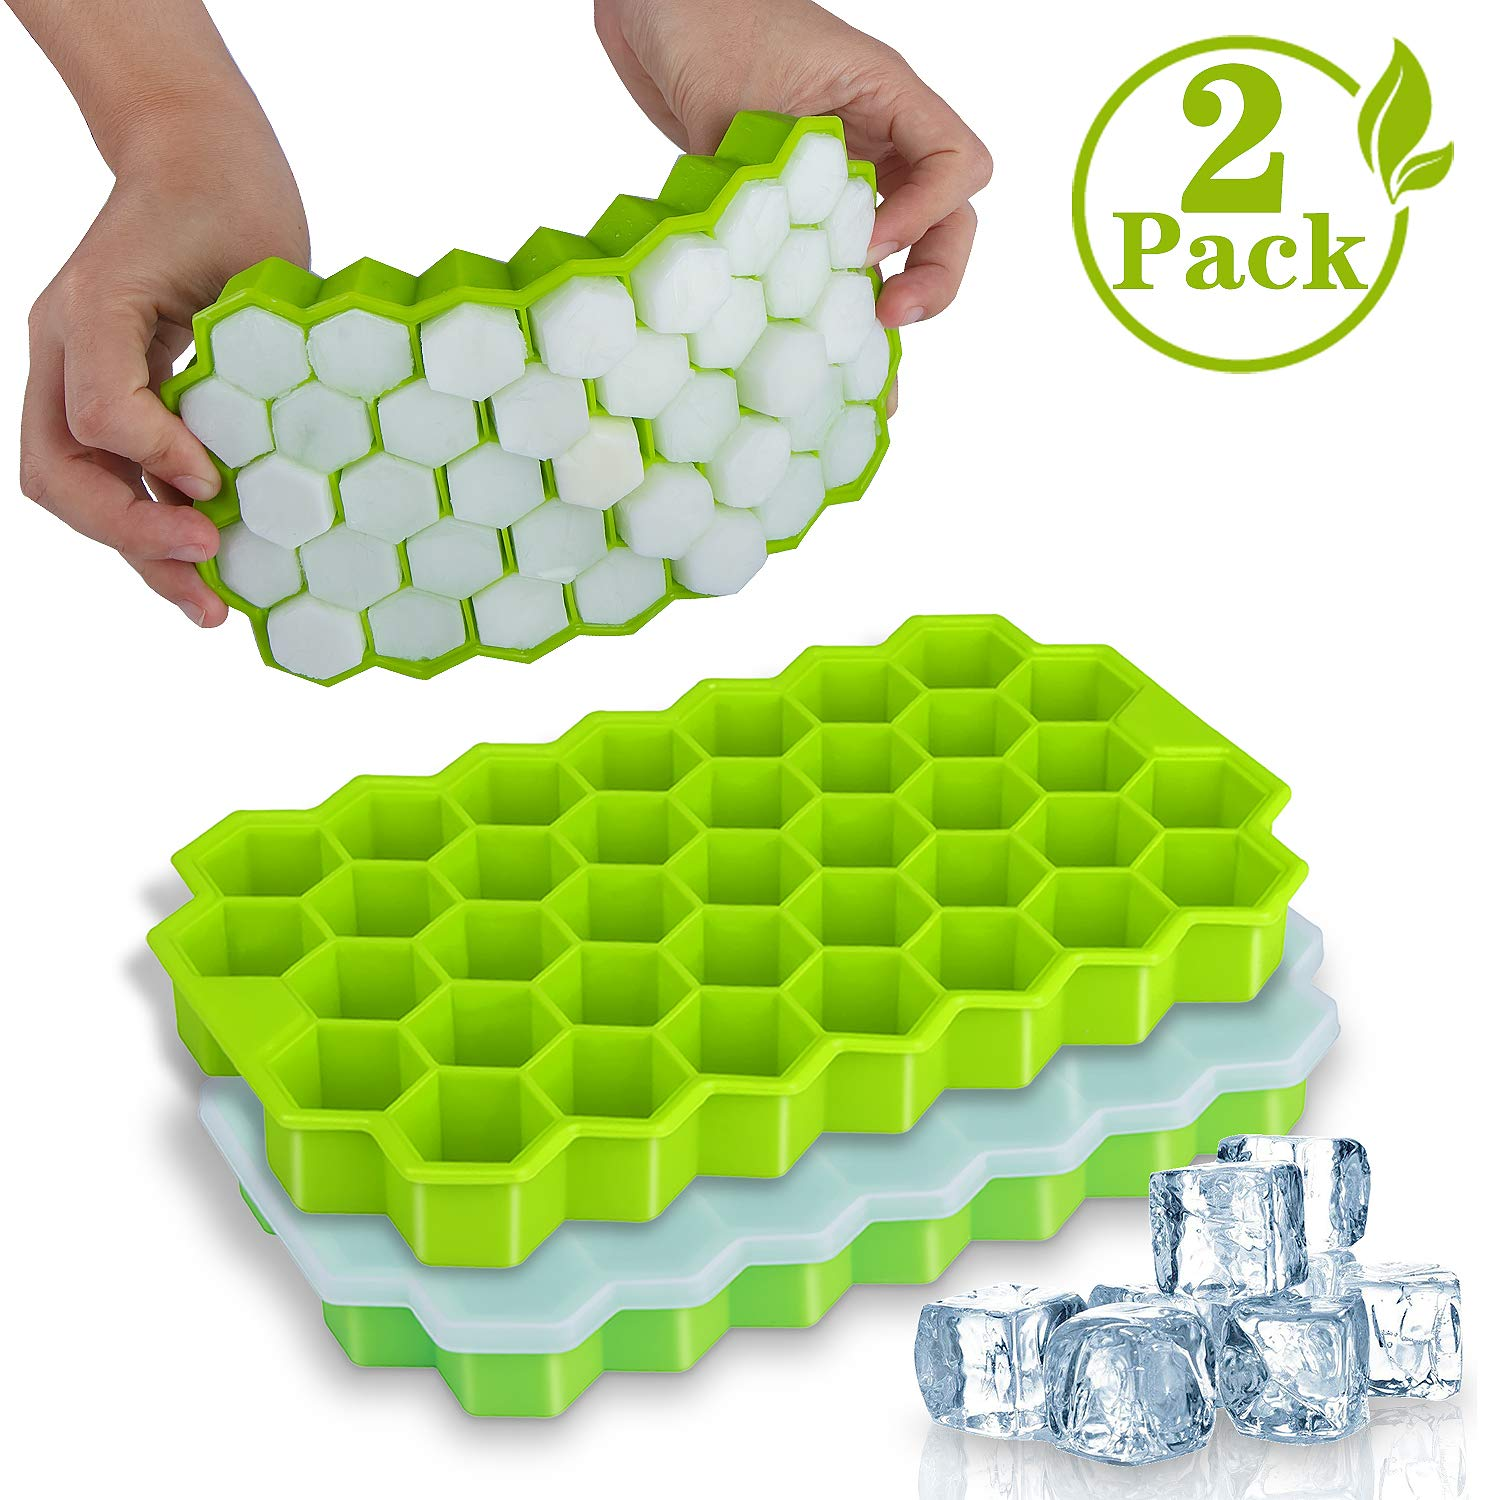 USSE Ice Cube Trays, BPA Free Silicone Ice Cube Molds with Lid for Whiskey, Cocktail